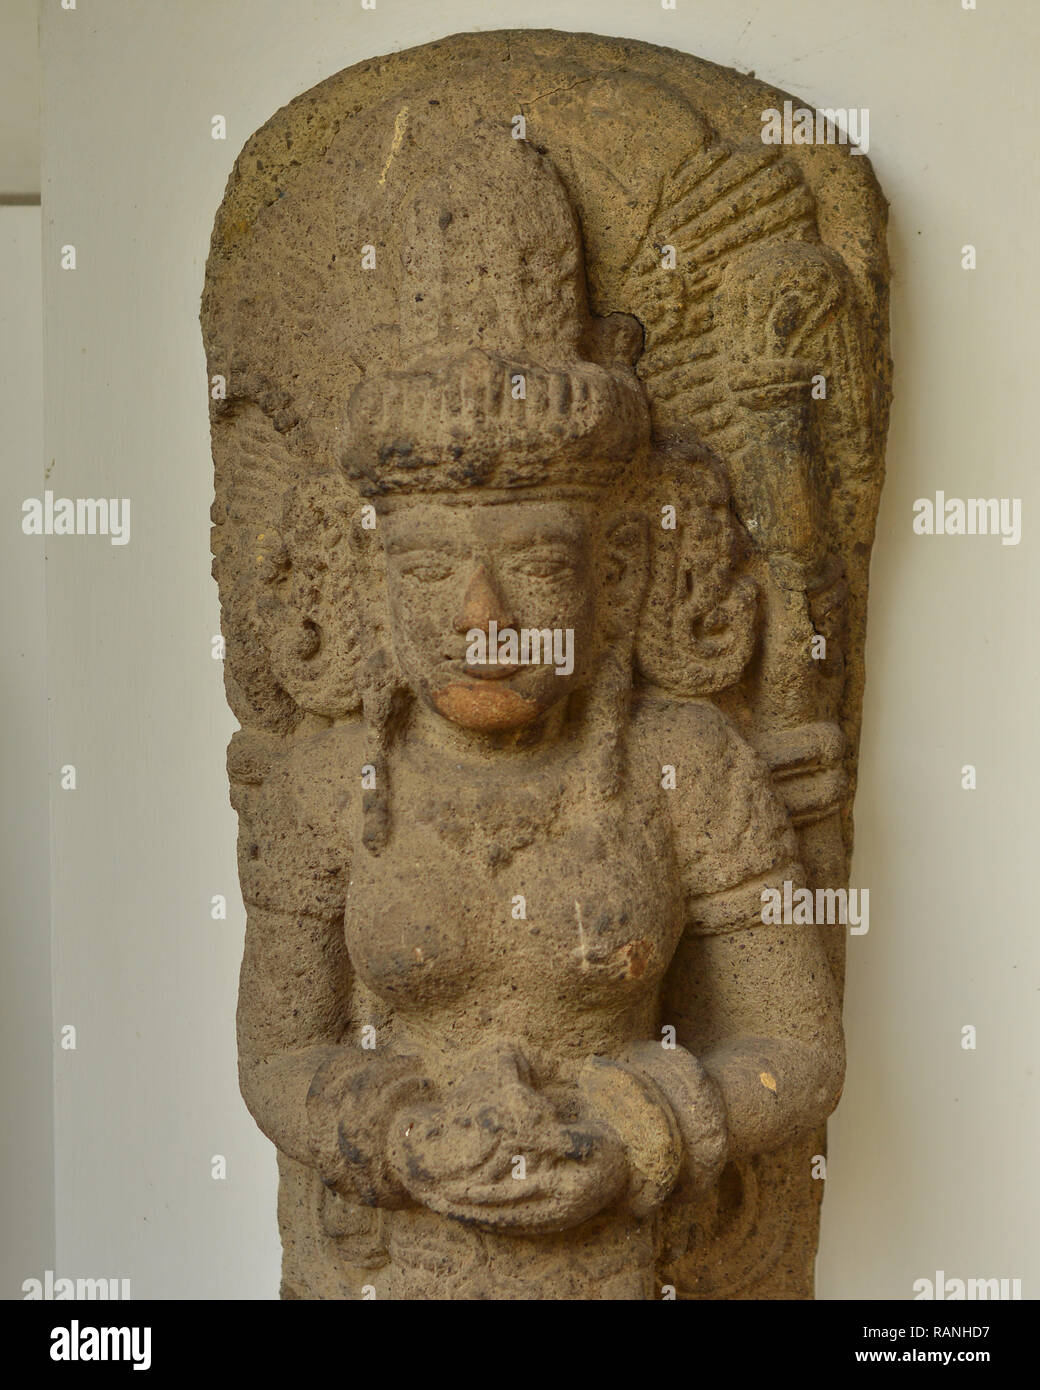 Arca or statue of Dewi Parwati found in central Java 8-10th century - Stock Image